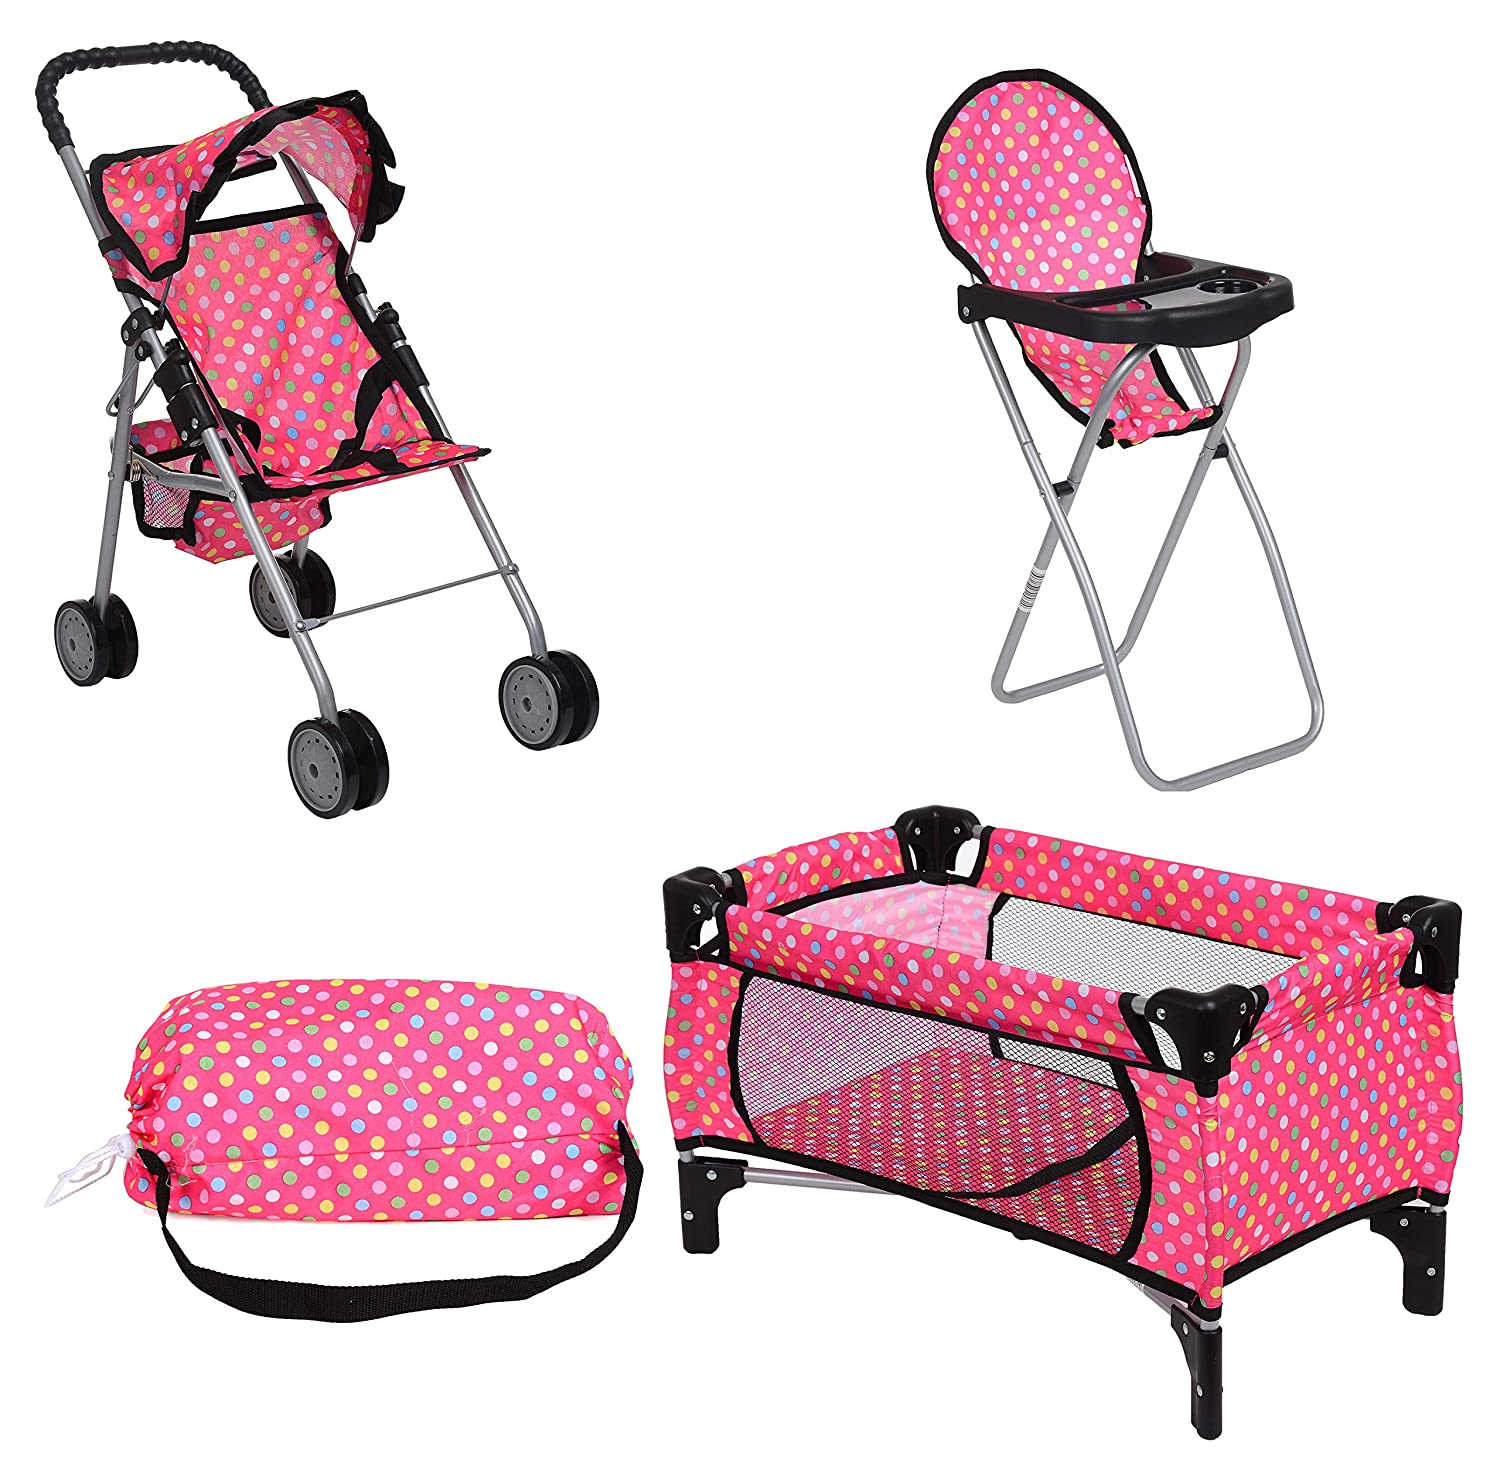 Exquisite Buggy Doll Play Set 3 in 1 Doll Set, 1 Pack N Play. 2 Doll Stroller 3.Doll High Chair. Fits Up to 18'' Doll